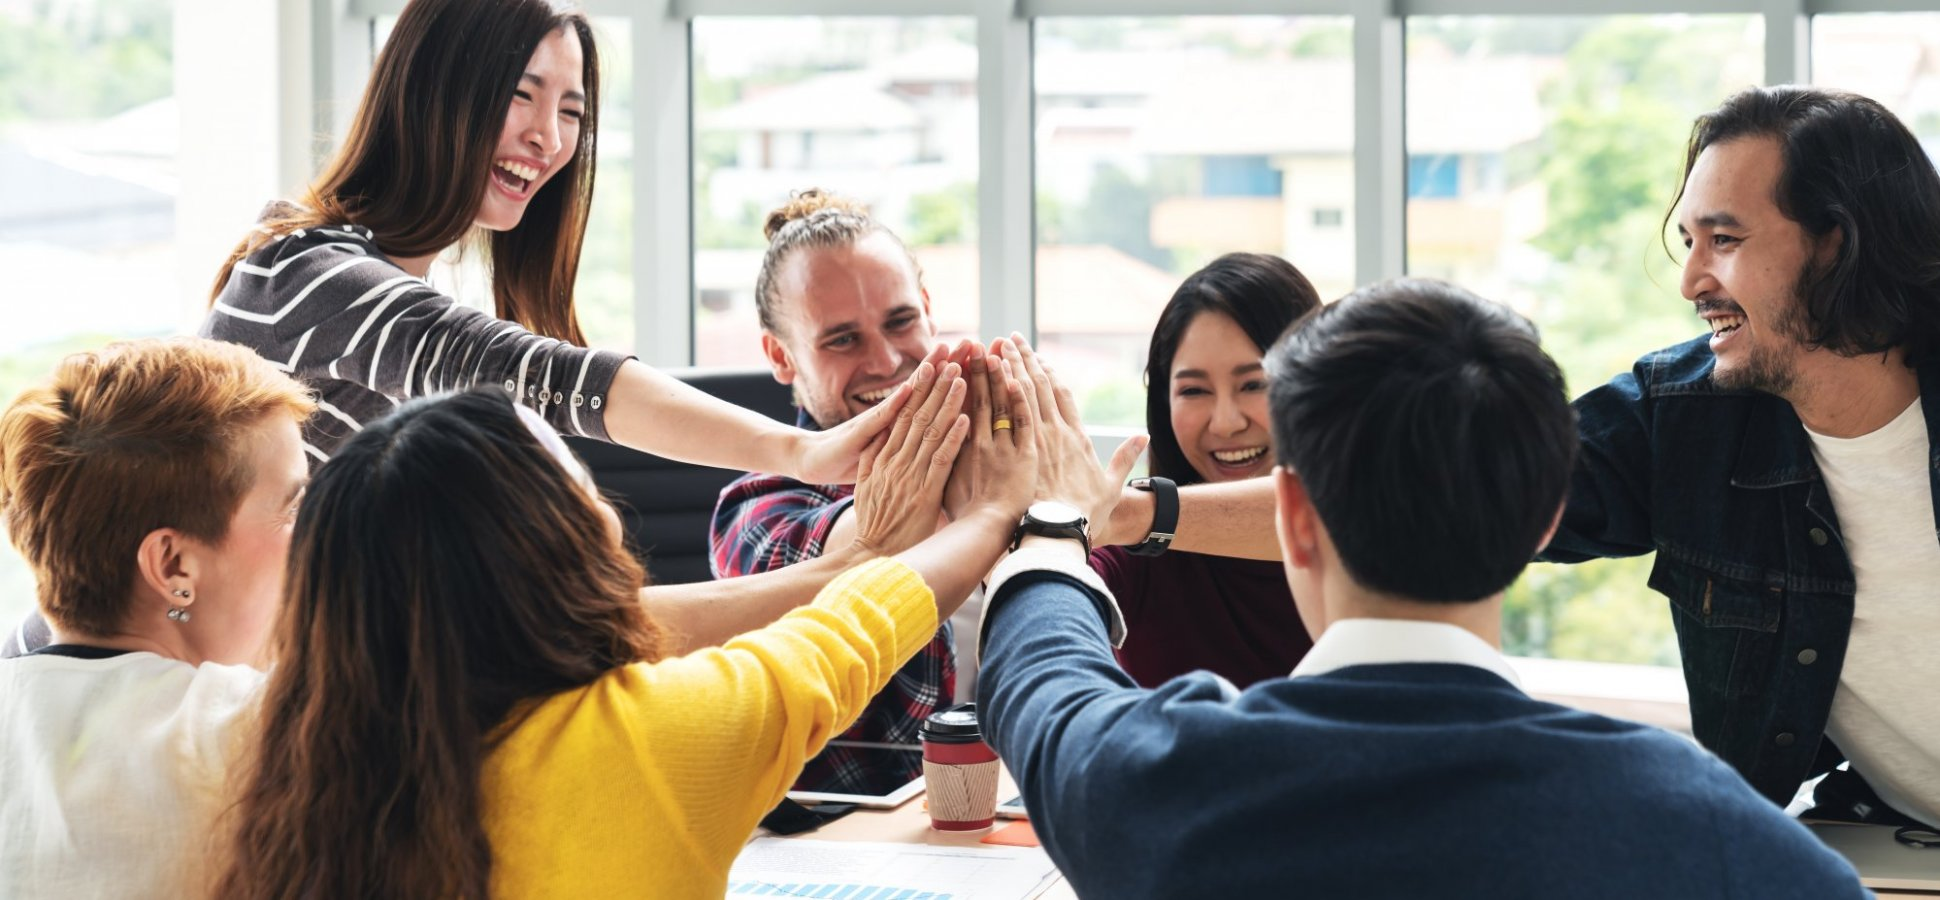 Make Your Business More Inclusive with These 8 Practices